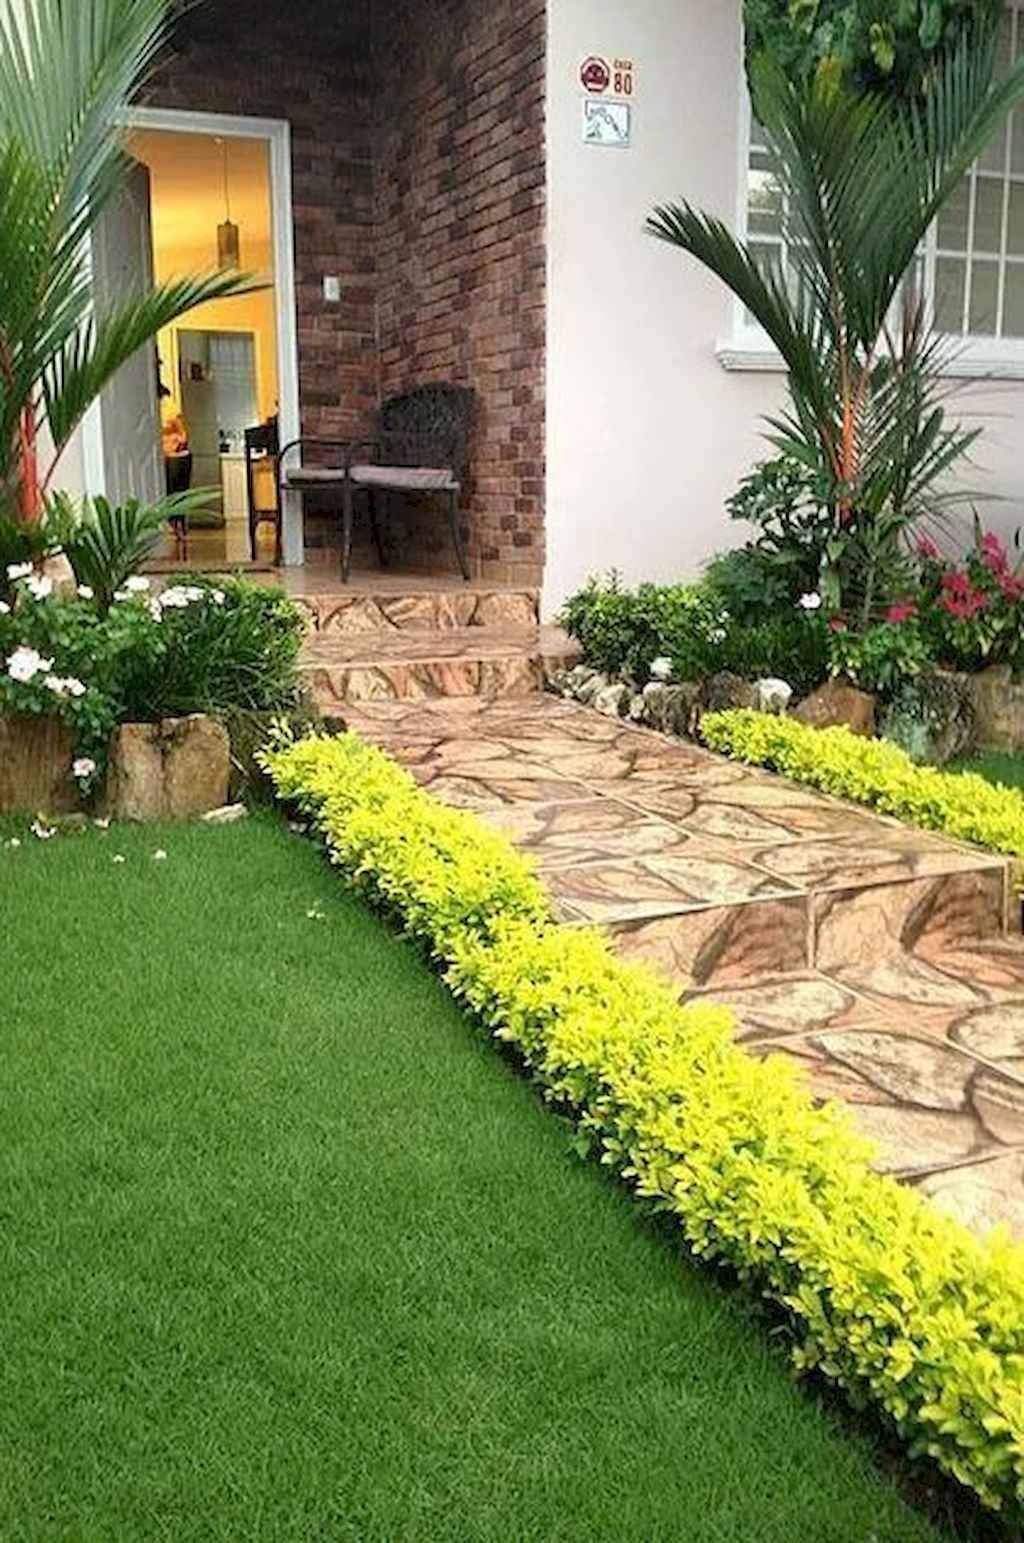 50 walkways front yard landscaping ideas on a budget on front yard landscaping ideas id=66583